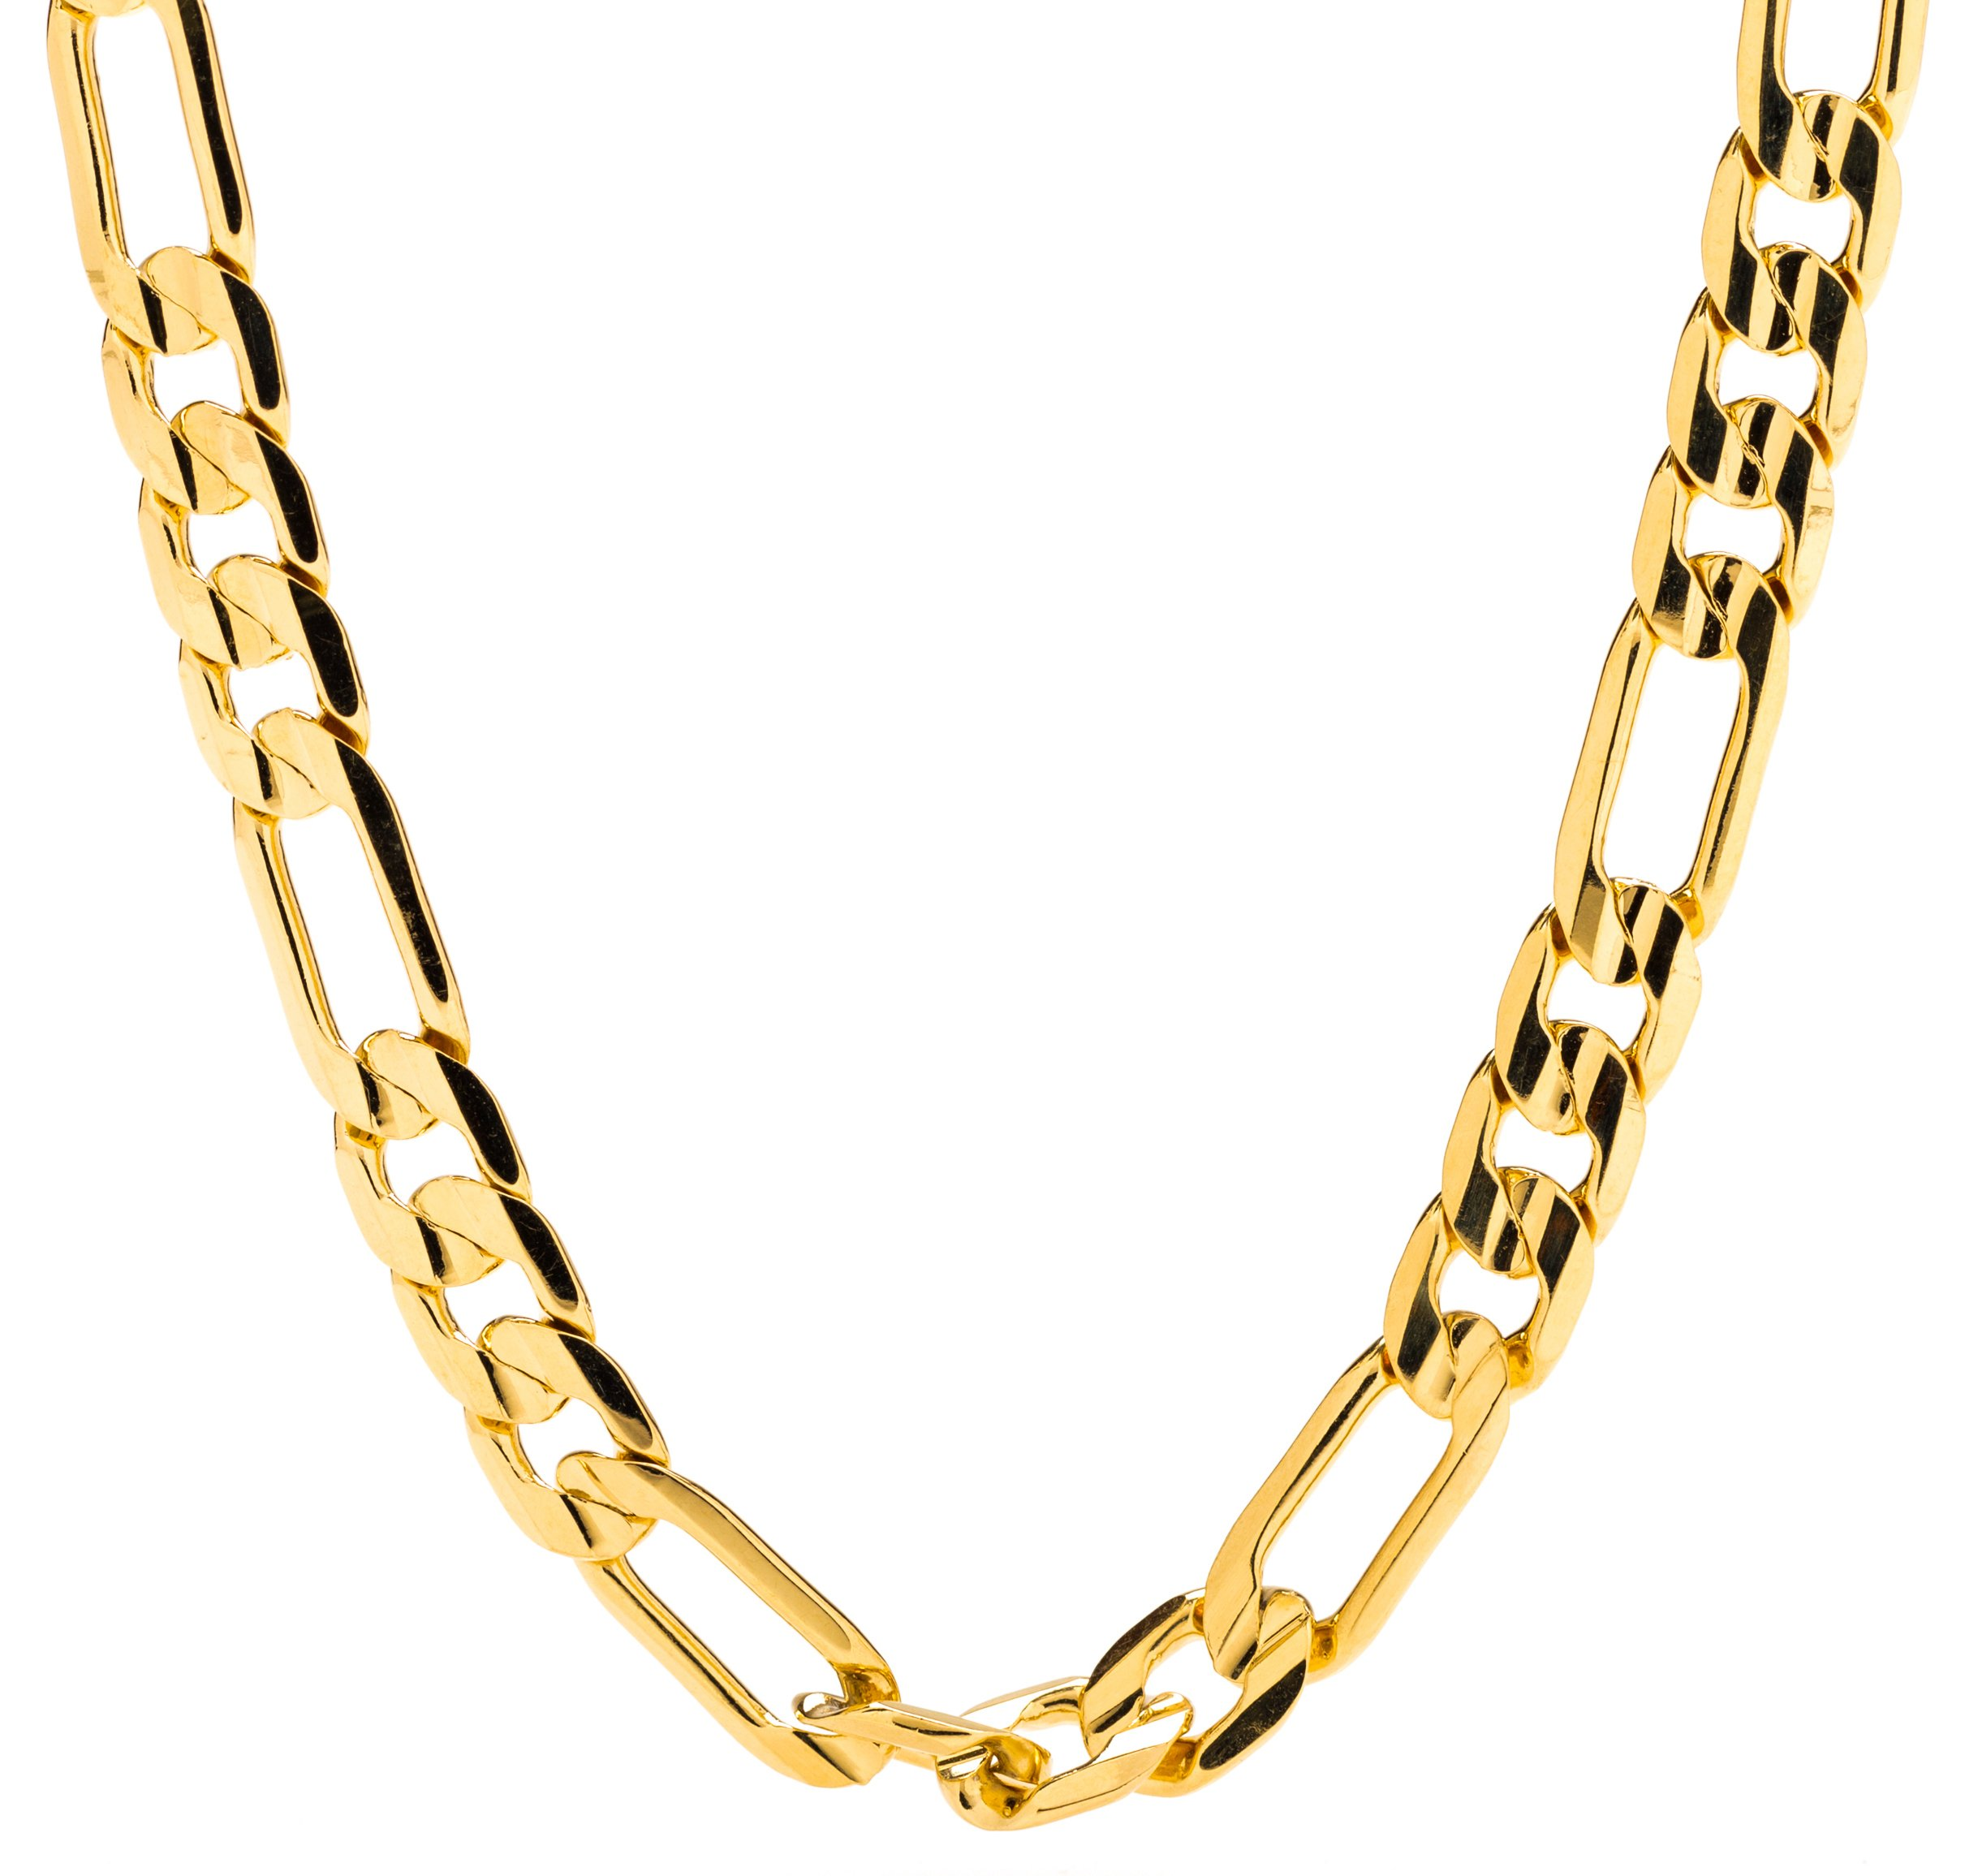 Lifetime Jewelry Figaro Chain 9MM, 24K Gold with Inlaid Bronze, Premium Fashion Jewelry, Pendant Necklace Wear Alone or with Pendants, Hip Hop, Guaranteed for Life, 22 Inches by Lifetime Jewelry (Image #1)